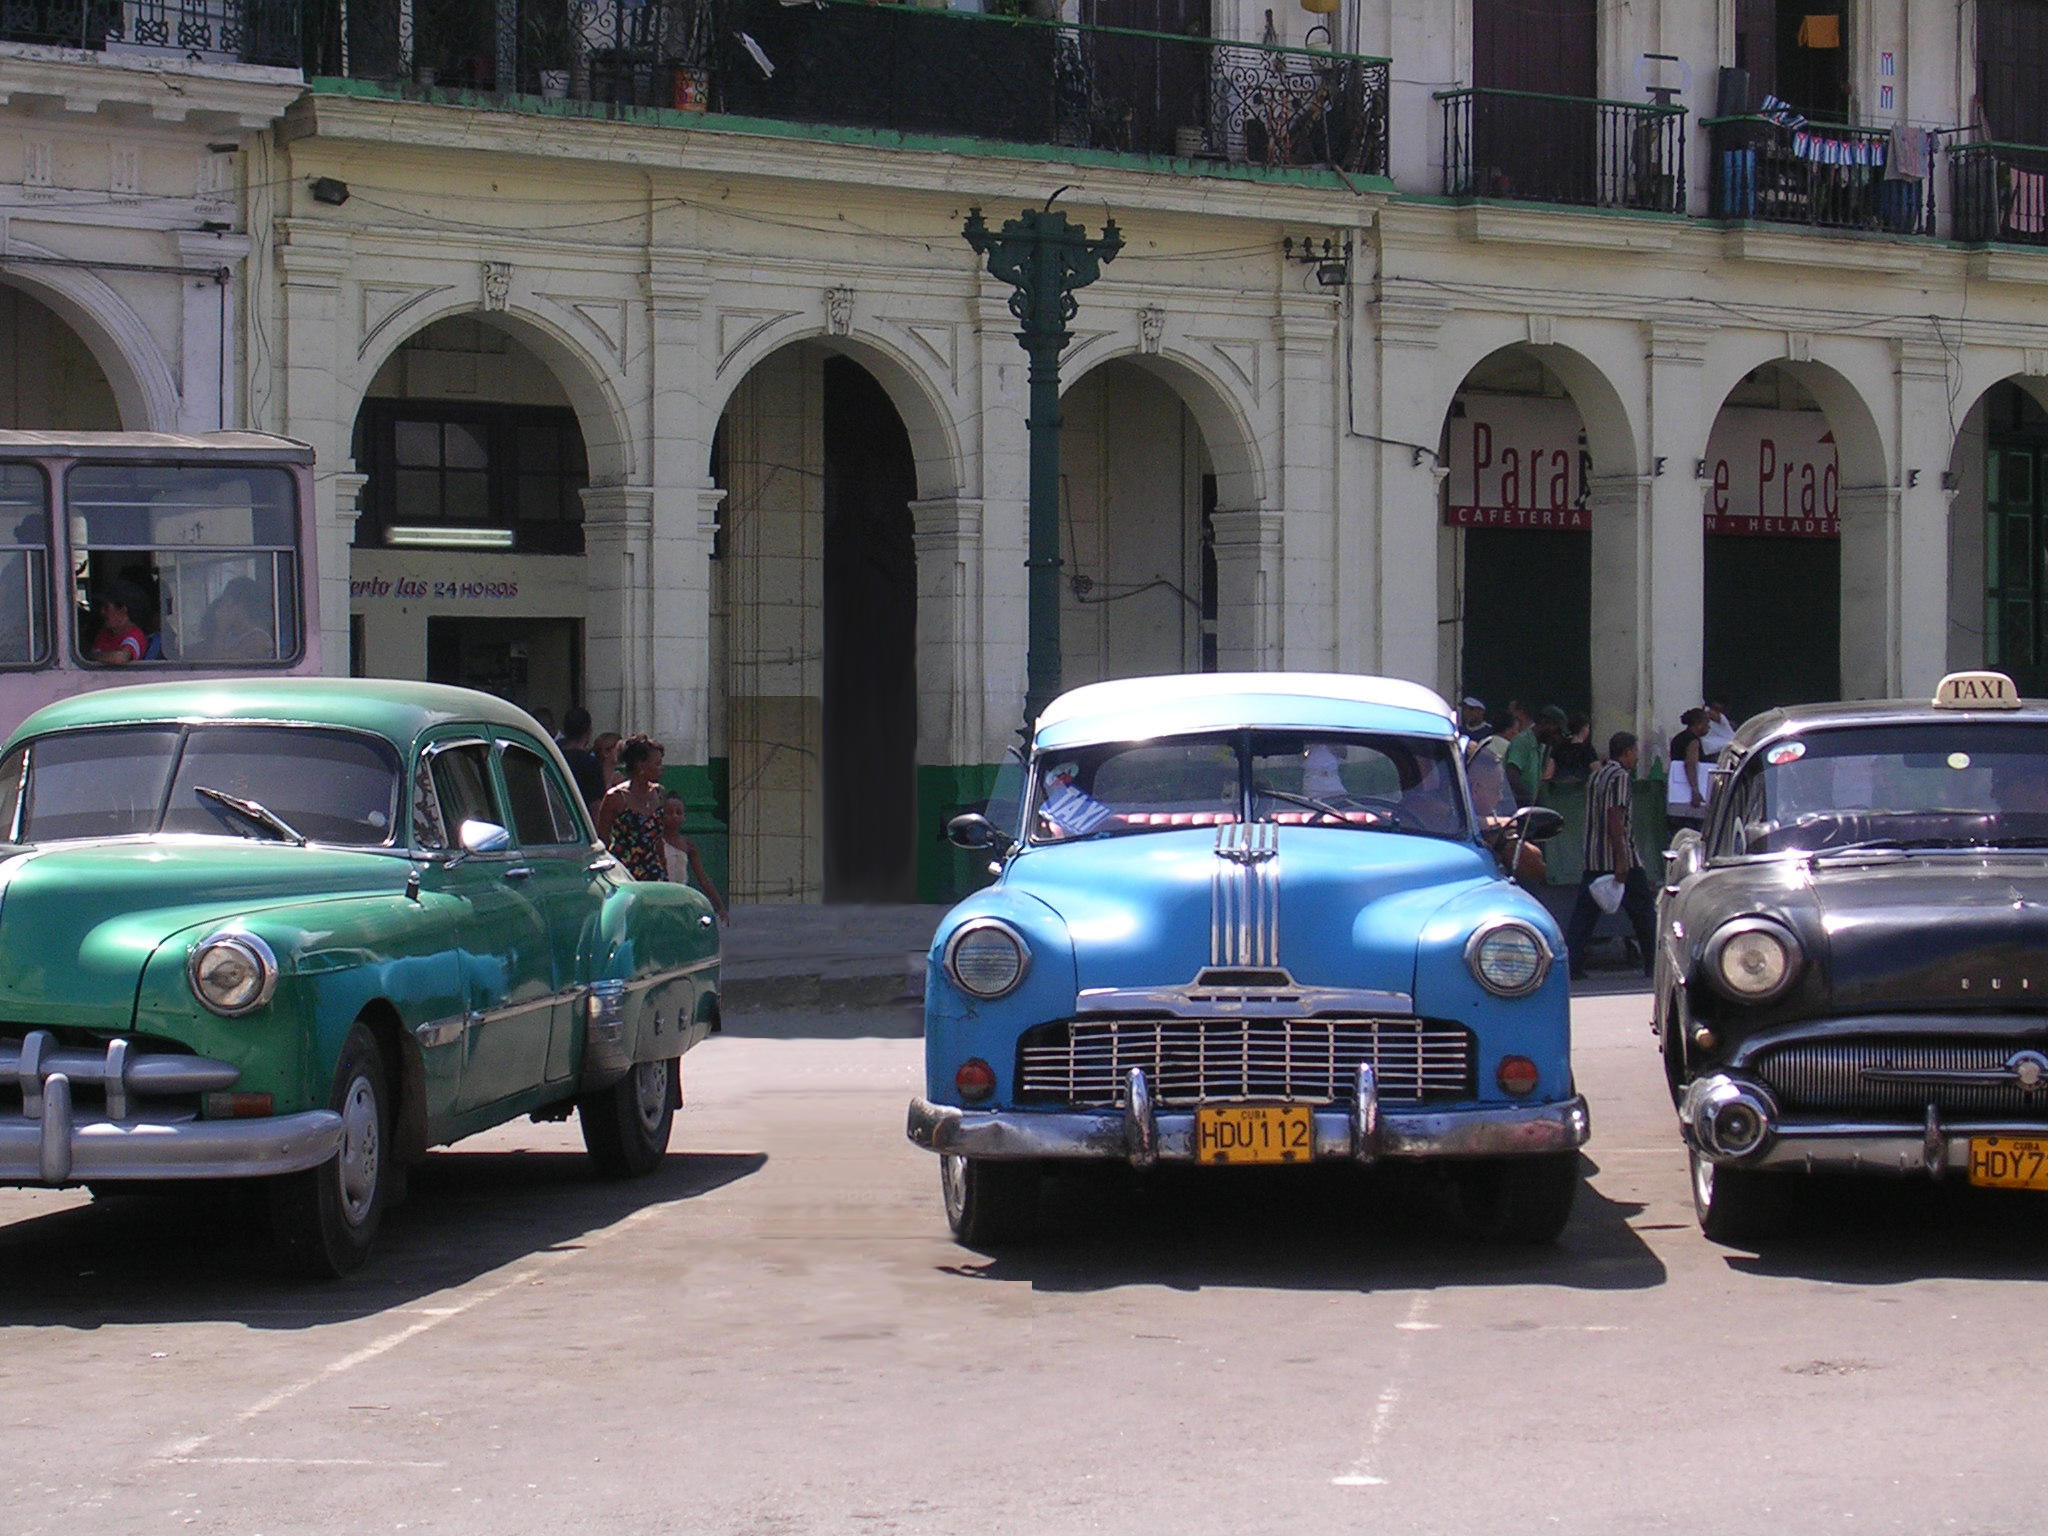 Cuban Cars in Havana by